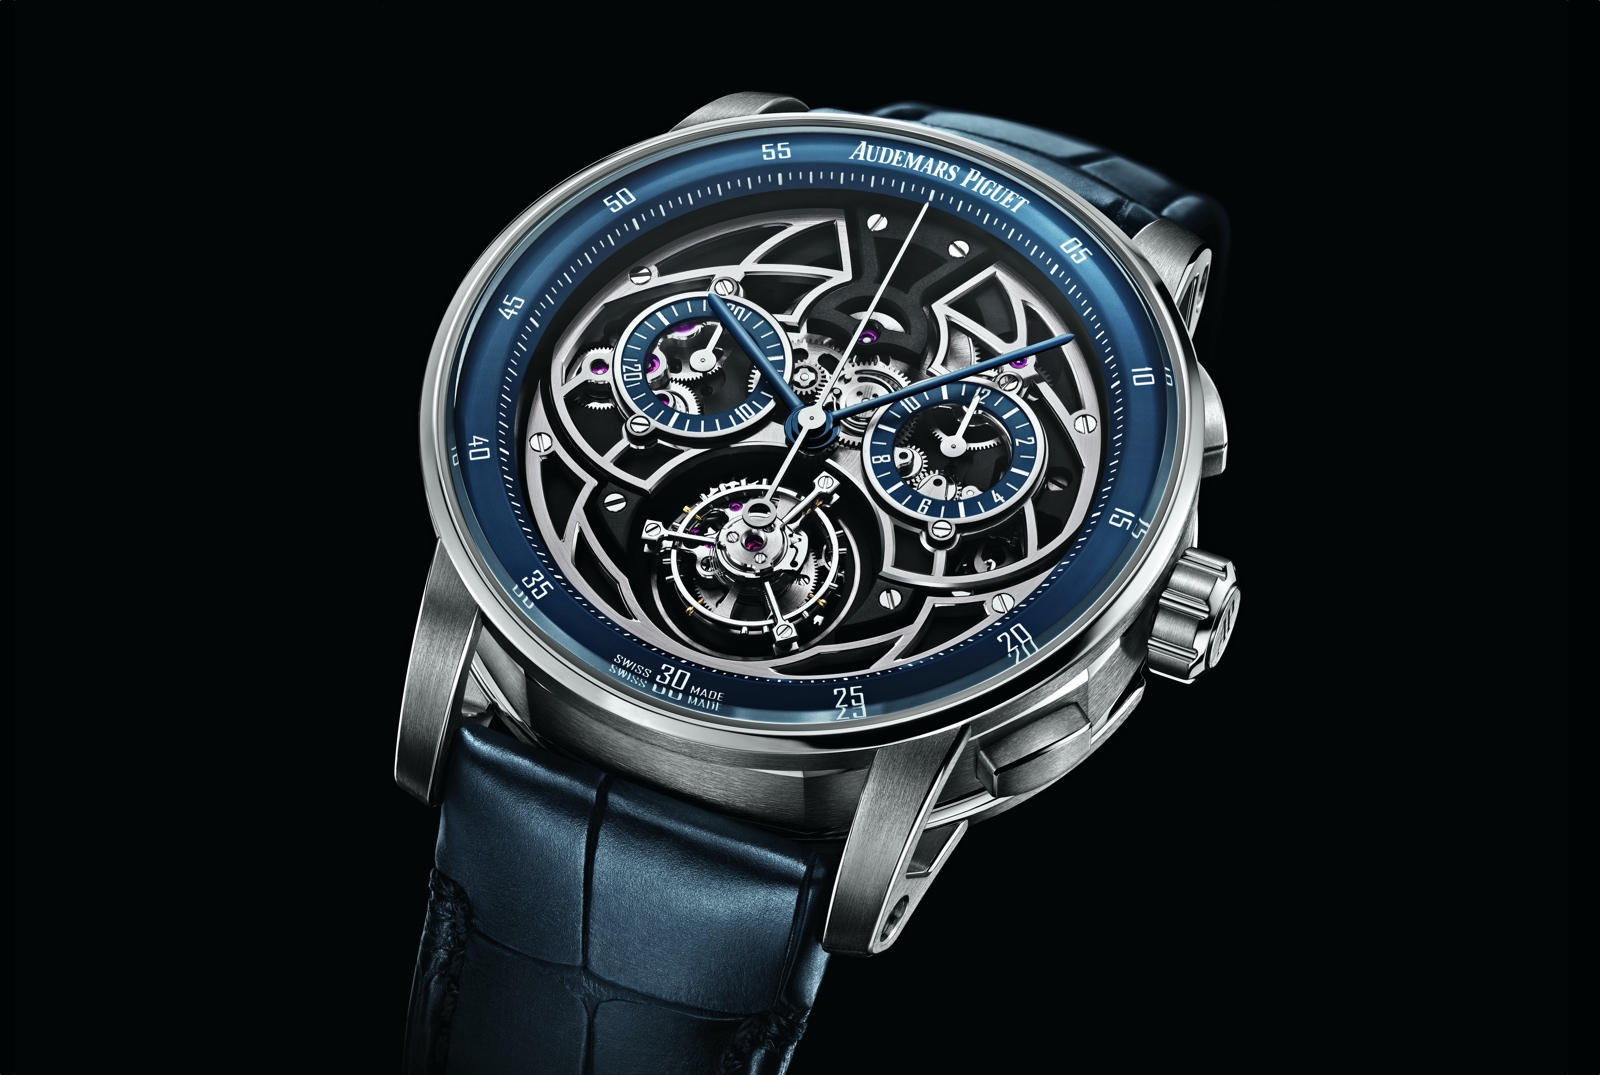 Audemars Piguet Code 11.59 Selfwinding Flying Tourbillon Chronograph